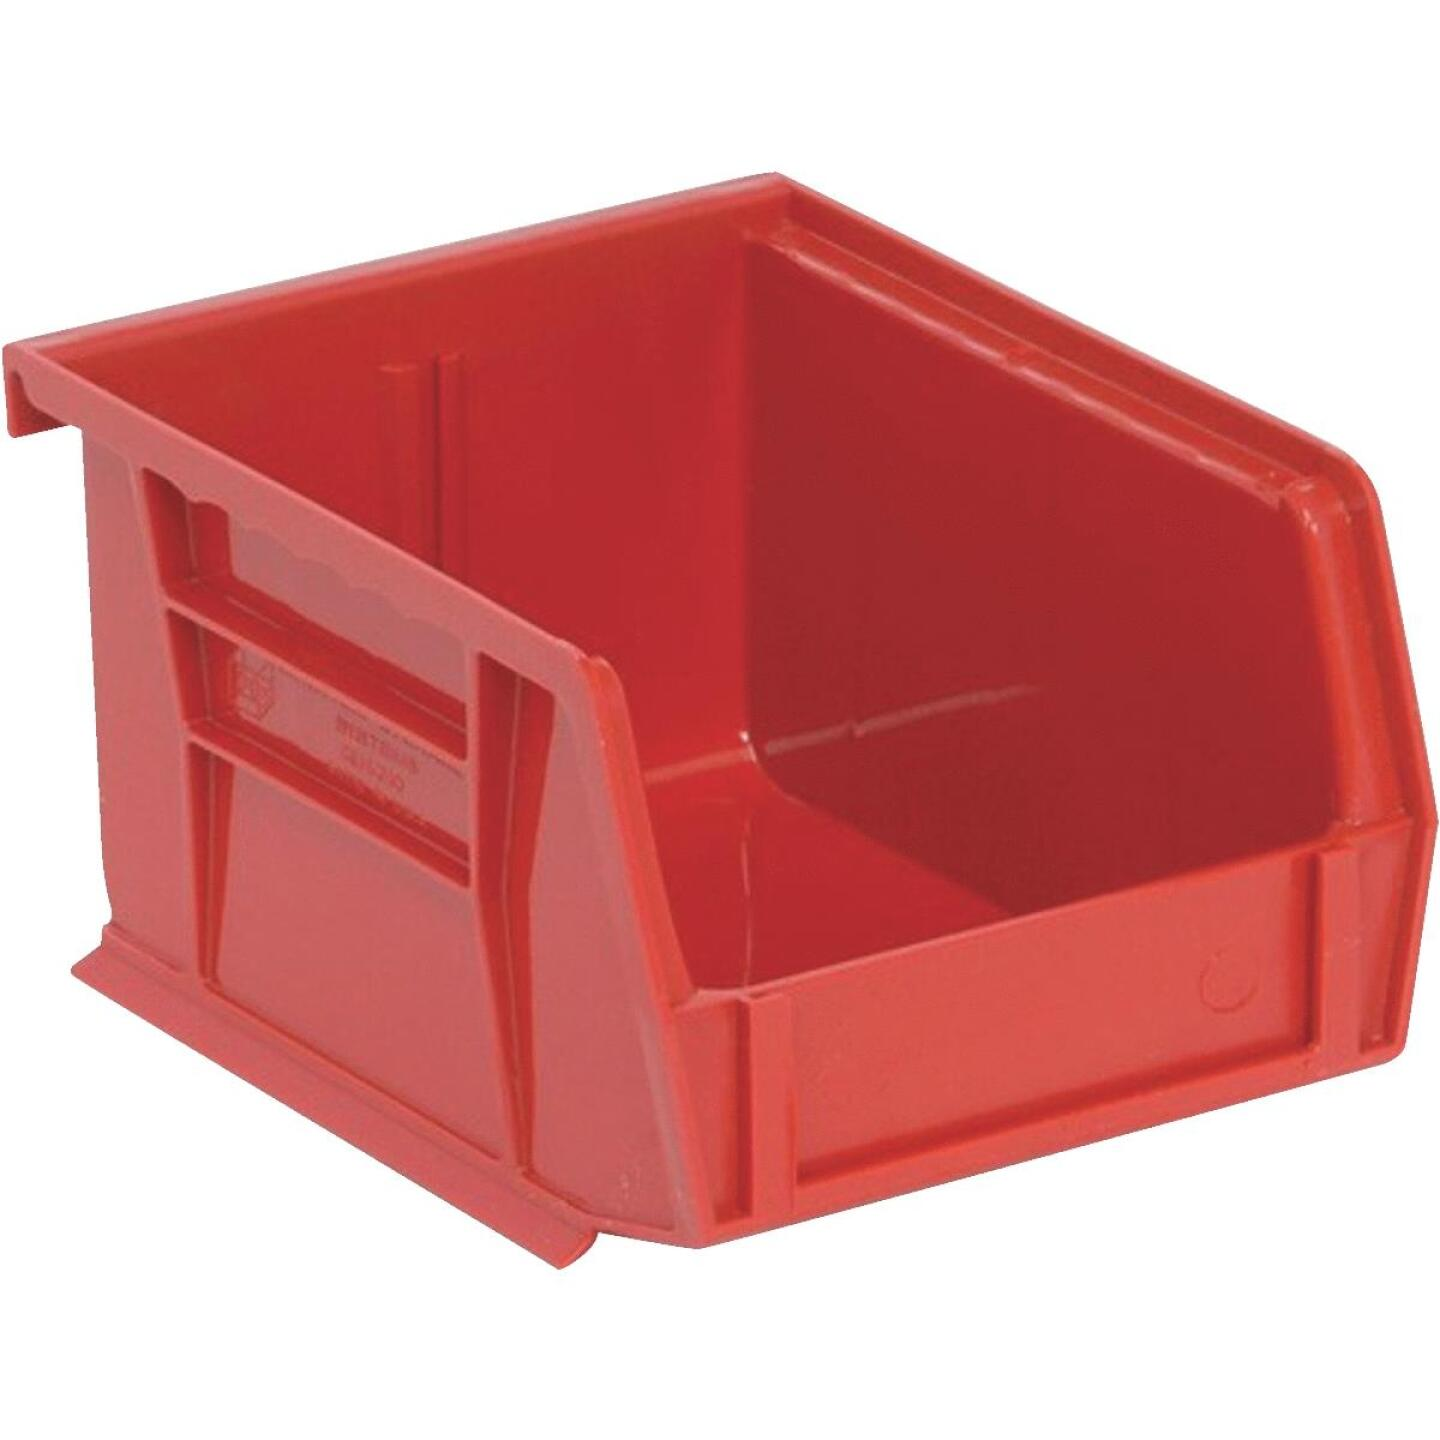 Quantum Storage Small Red Stackable Parts Bin (6-Pack) Image 1